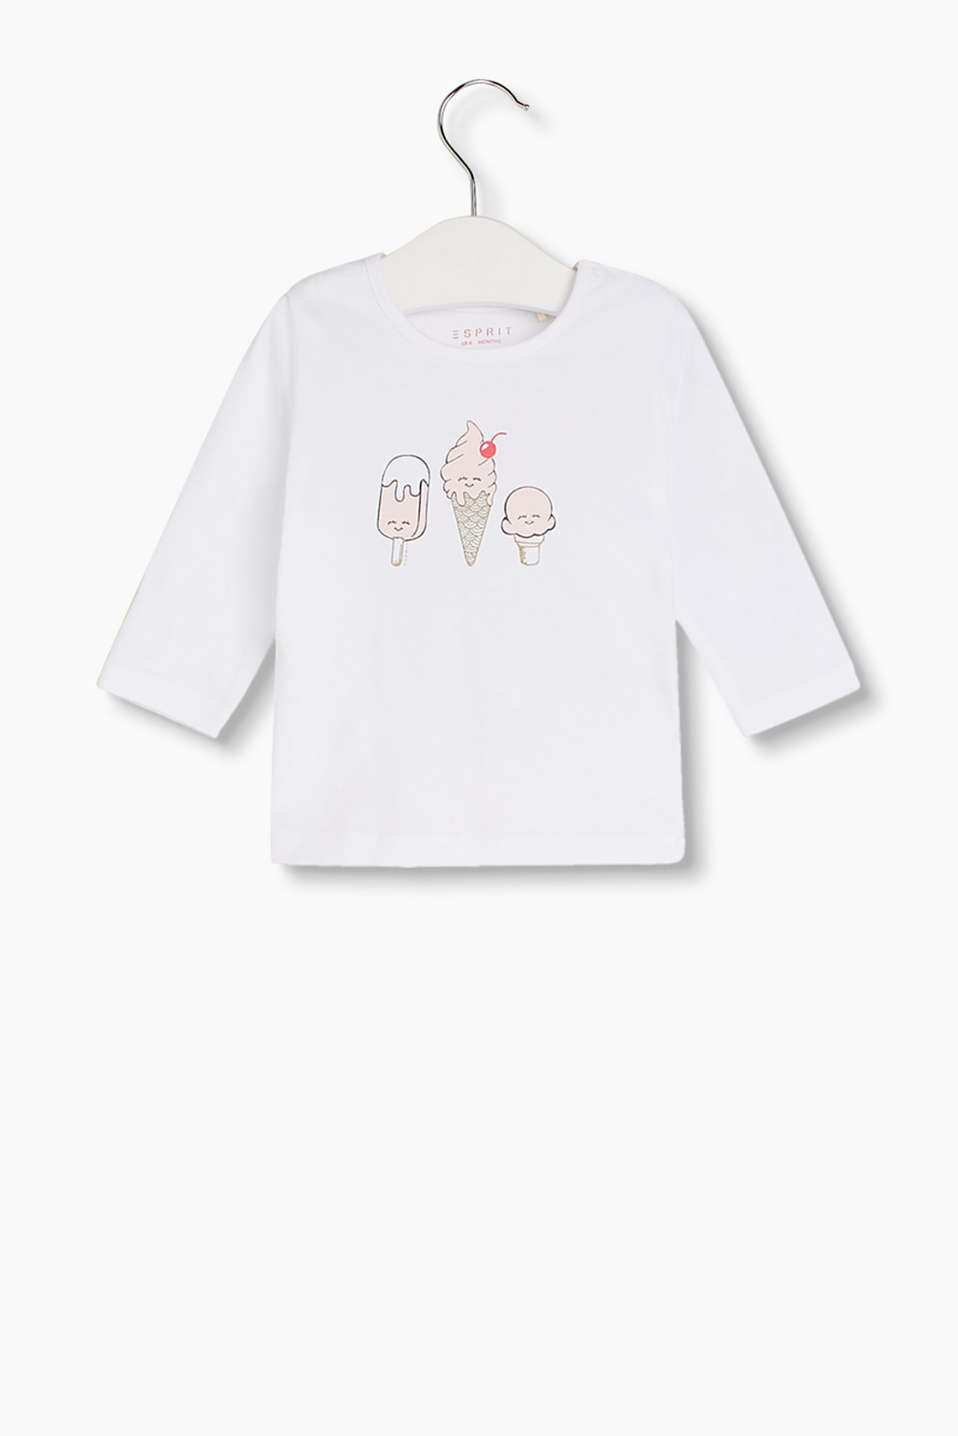 Long sleeve top made of 100% cotton with a cute ice cream print